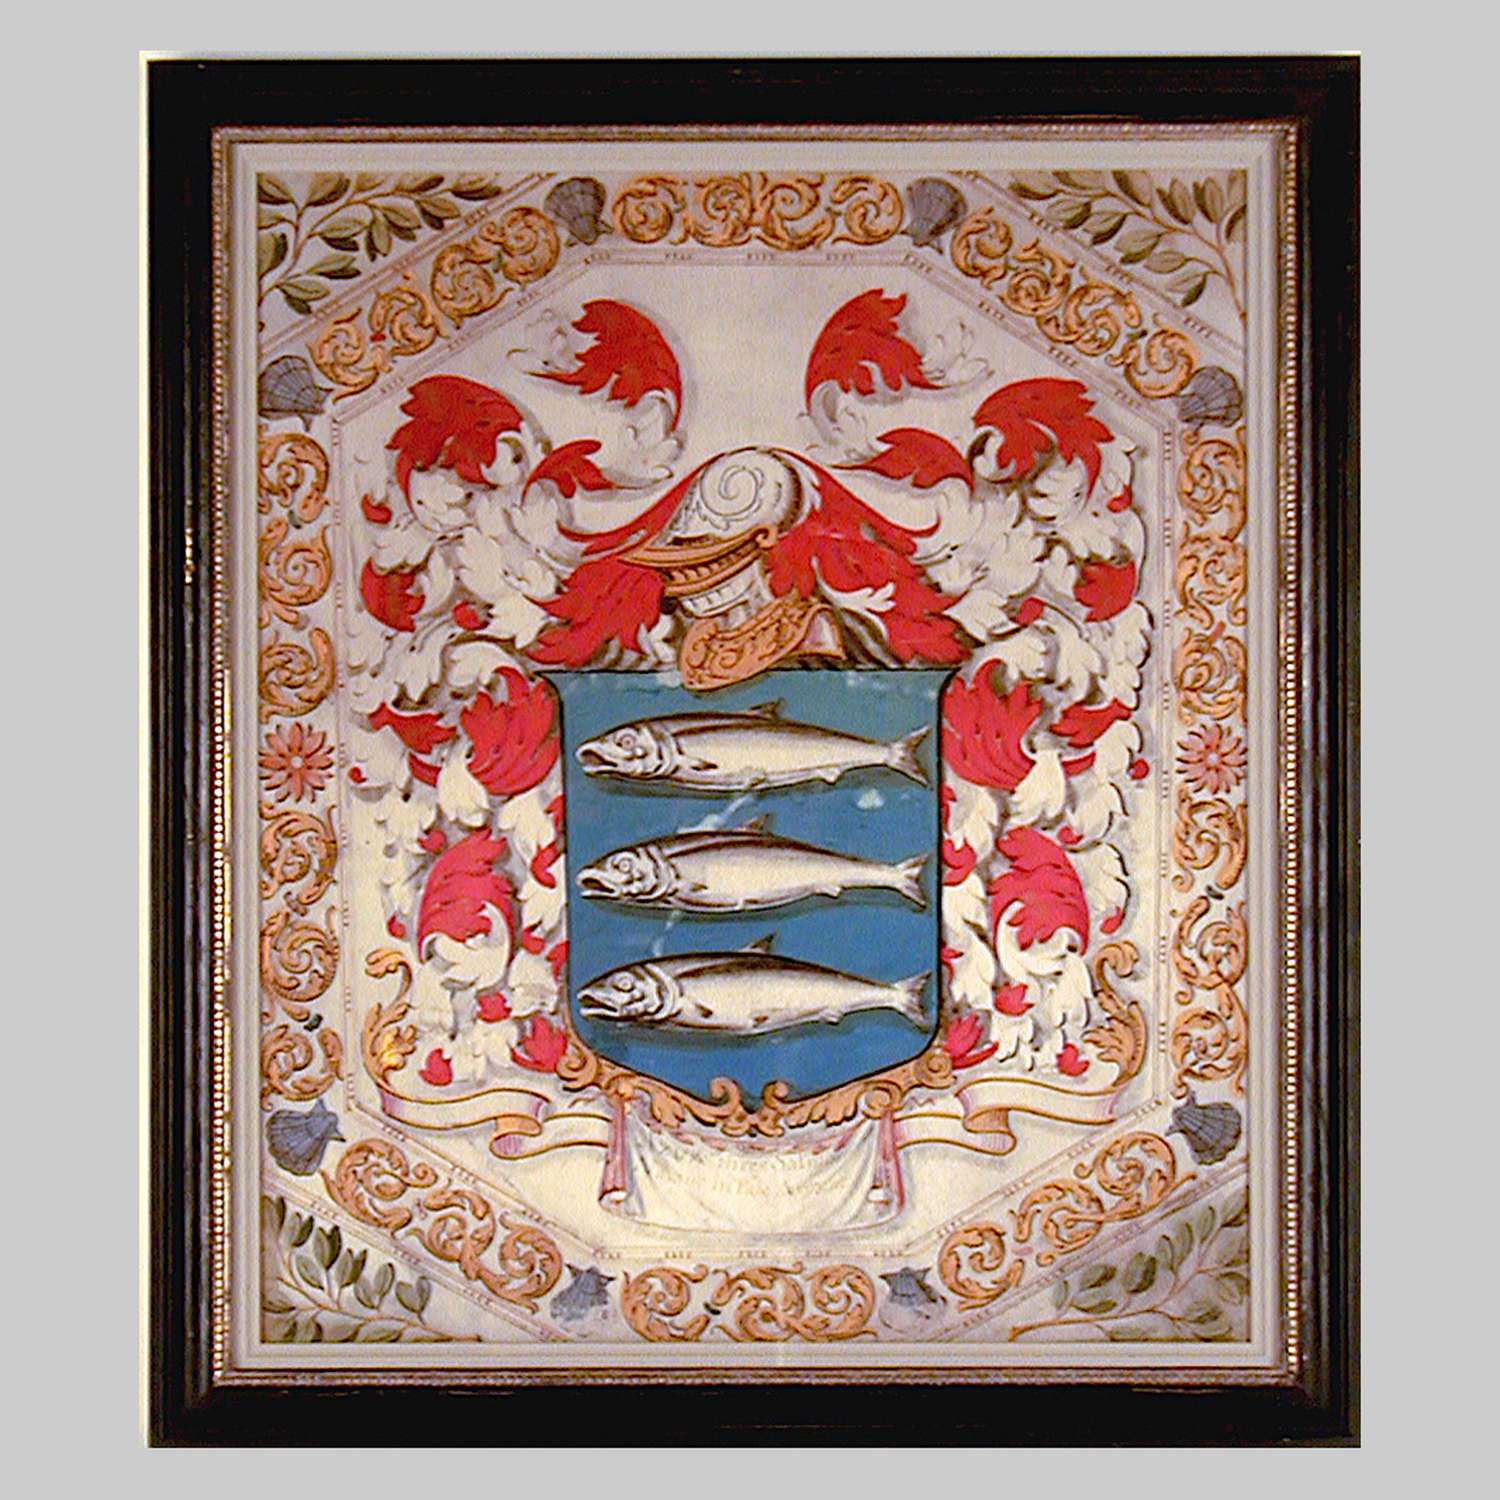 18th century Armorial Arms of the Sambrooke Family